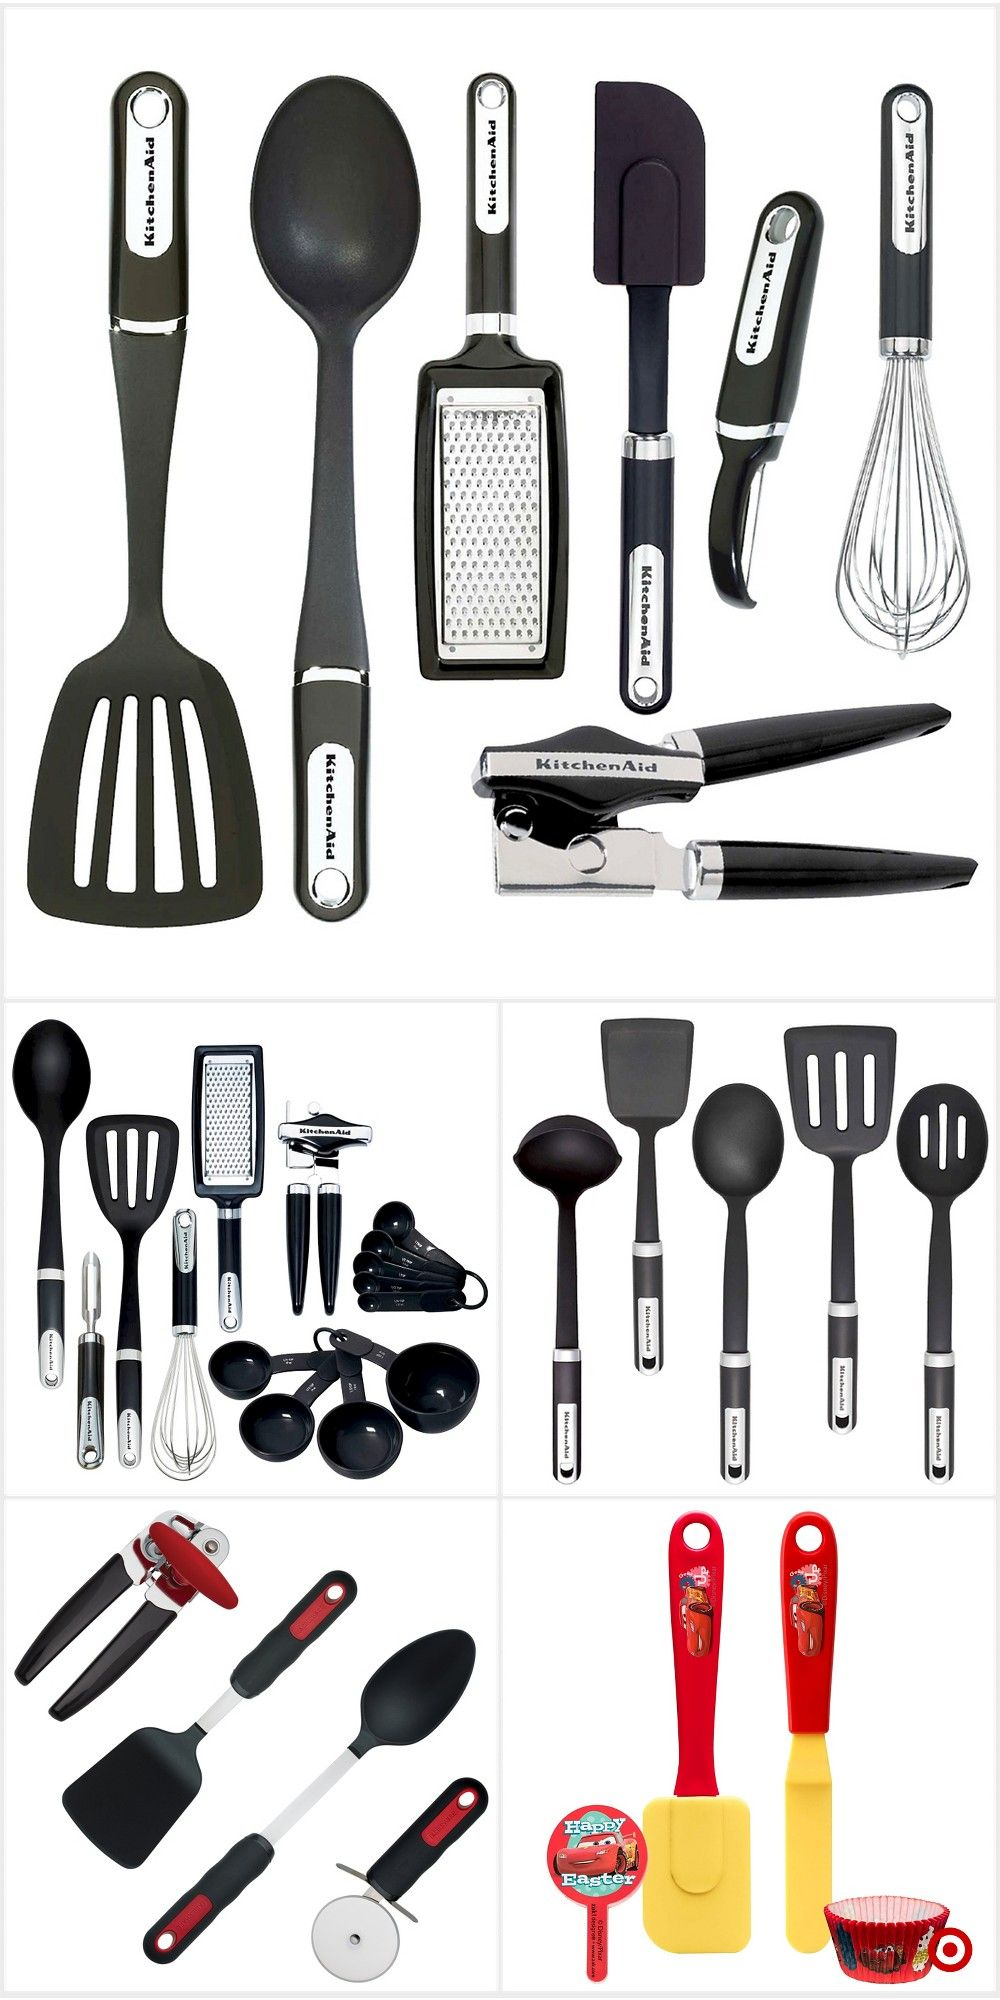 Shop Target For Kitchen Tool And Gadget Sets You Will Love At Great Low Prices Free Shipping On Orders Of 35 Or Free Same Common Cooking Utensils